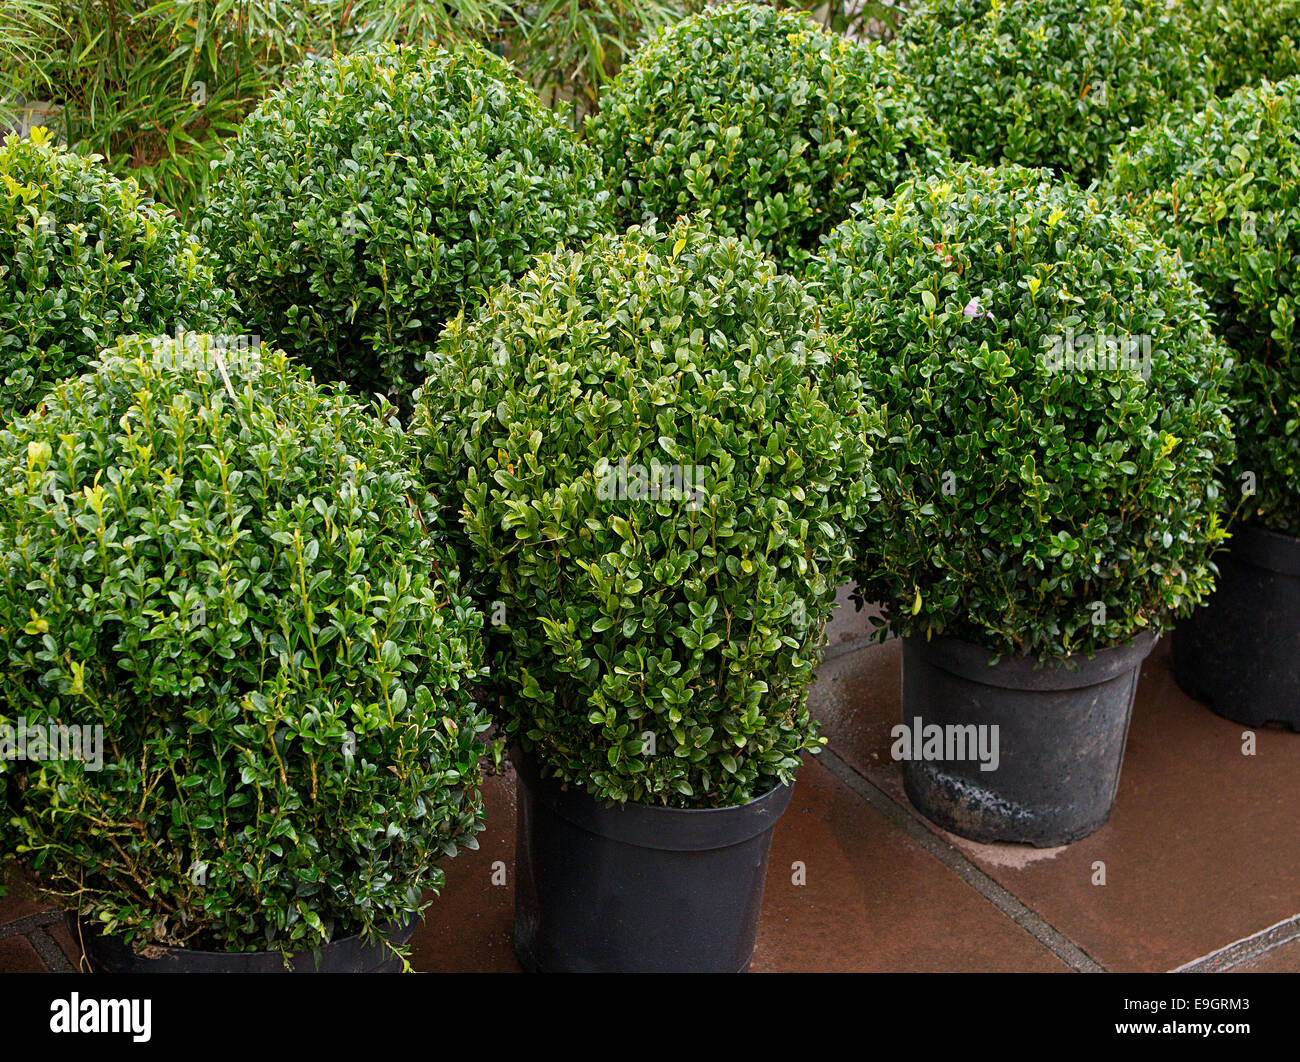 Row of topiary bushes in pots for sale at a nursery or garden centre a great feature for landscape gardeners. - Stock Image